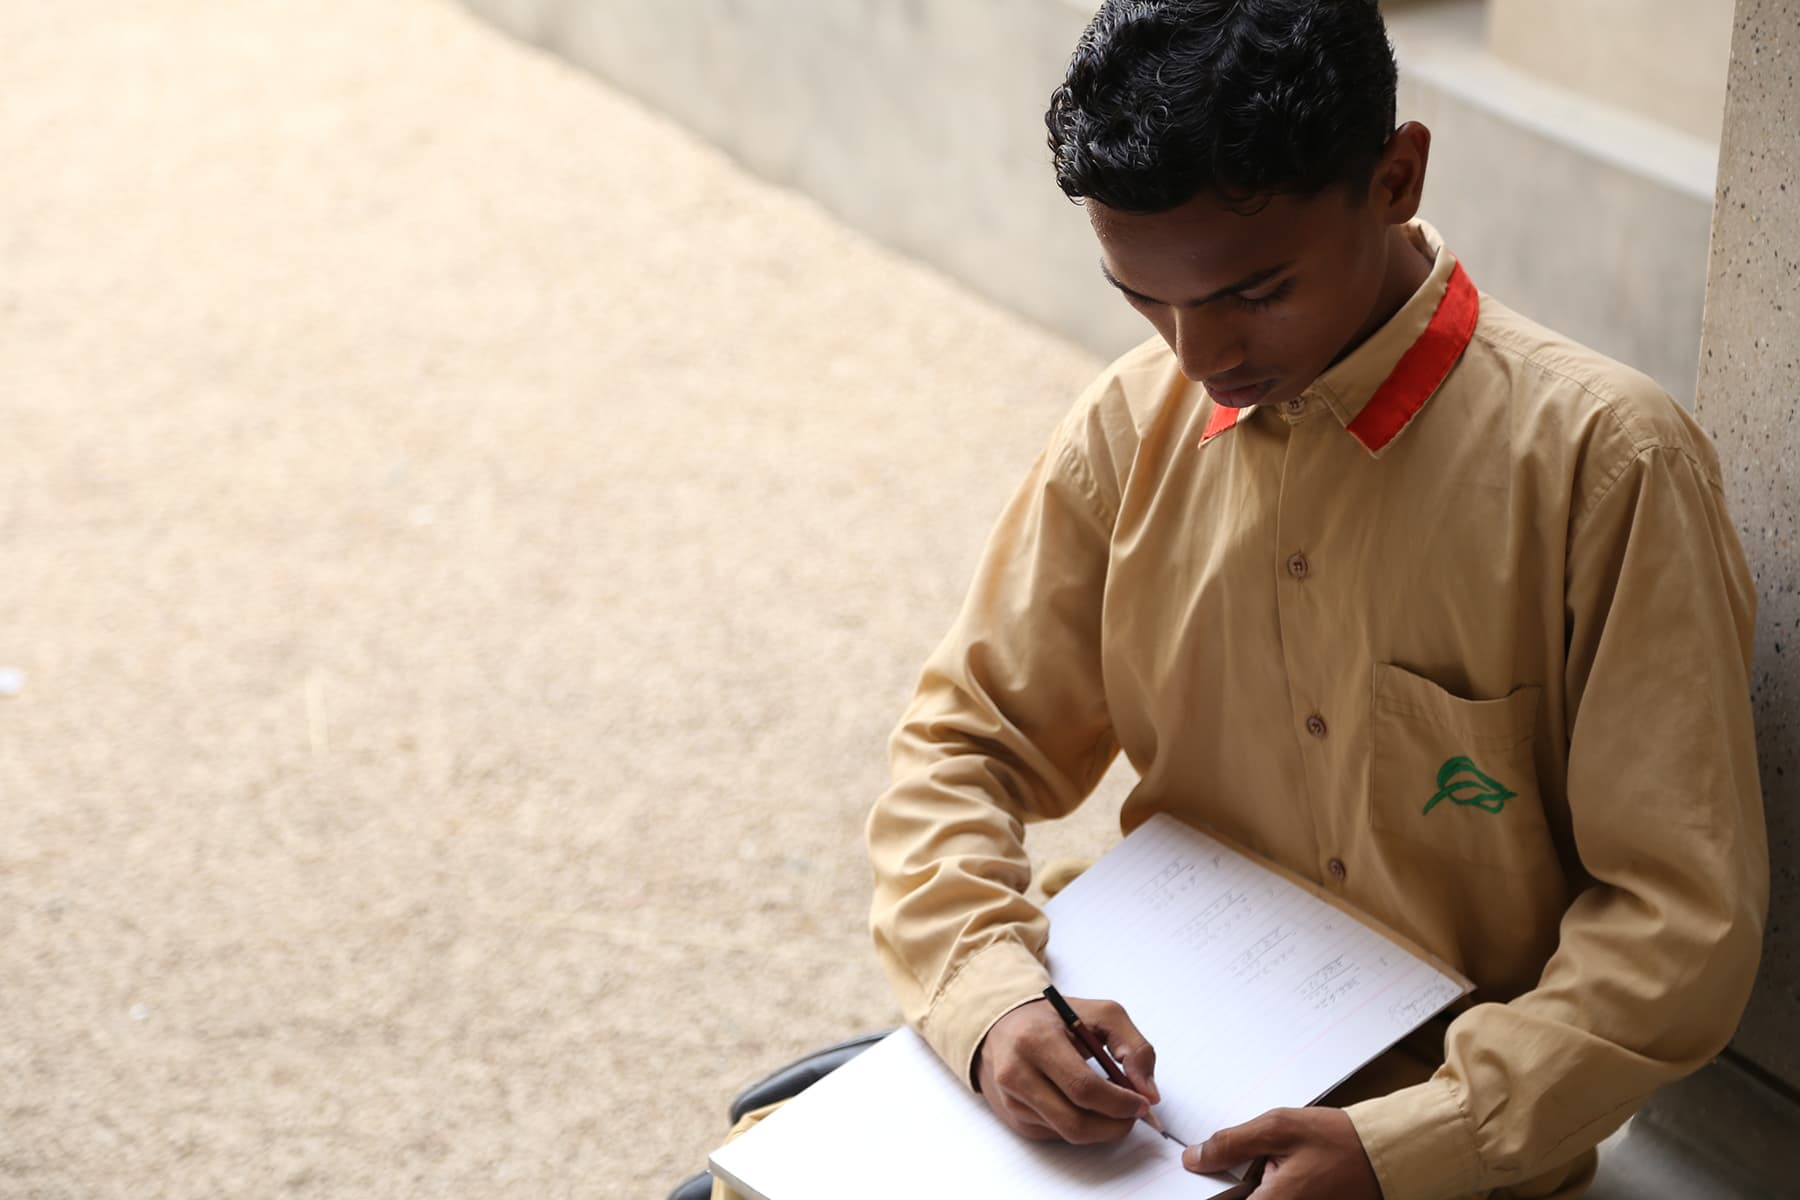 Khalil Ahmed pictured taking notes at his school - Photo by Mustafa Ilyas